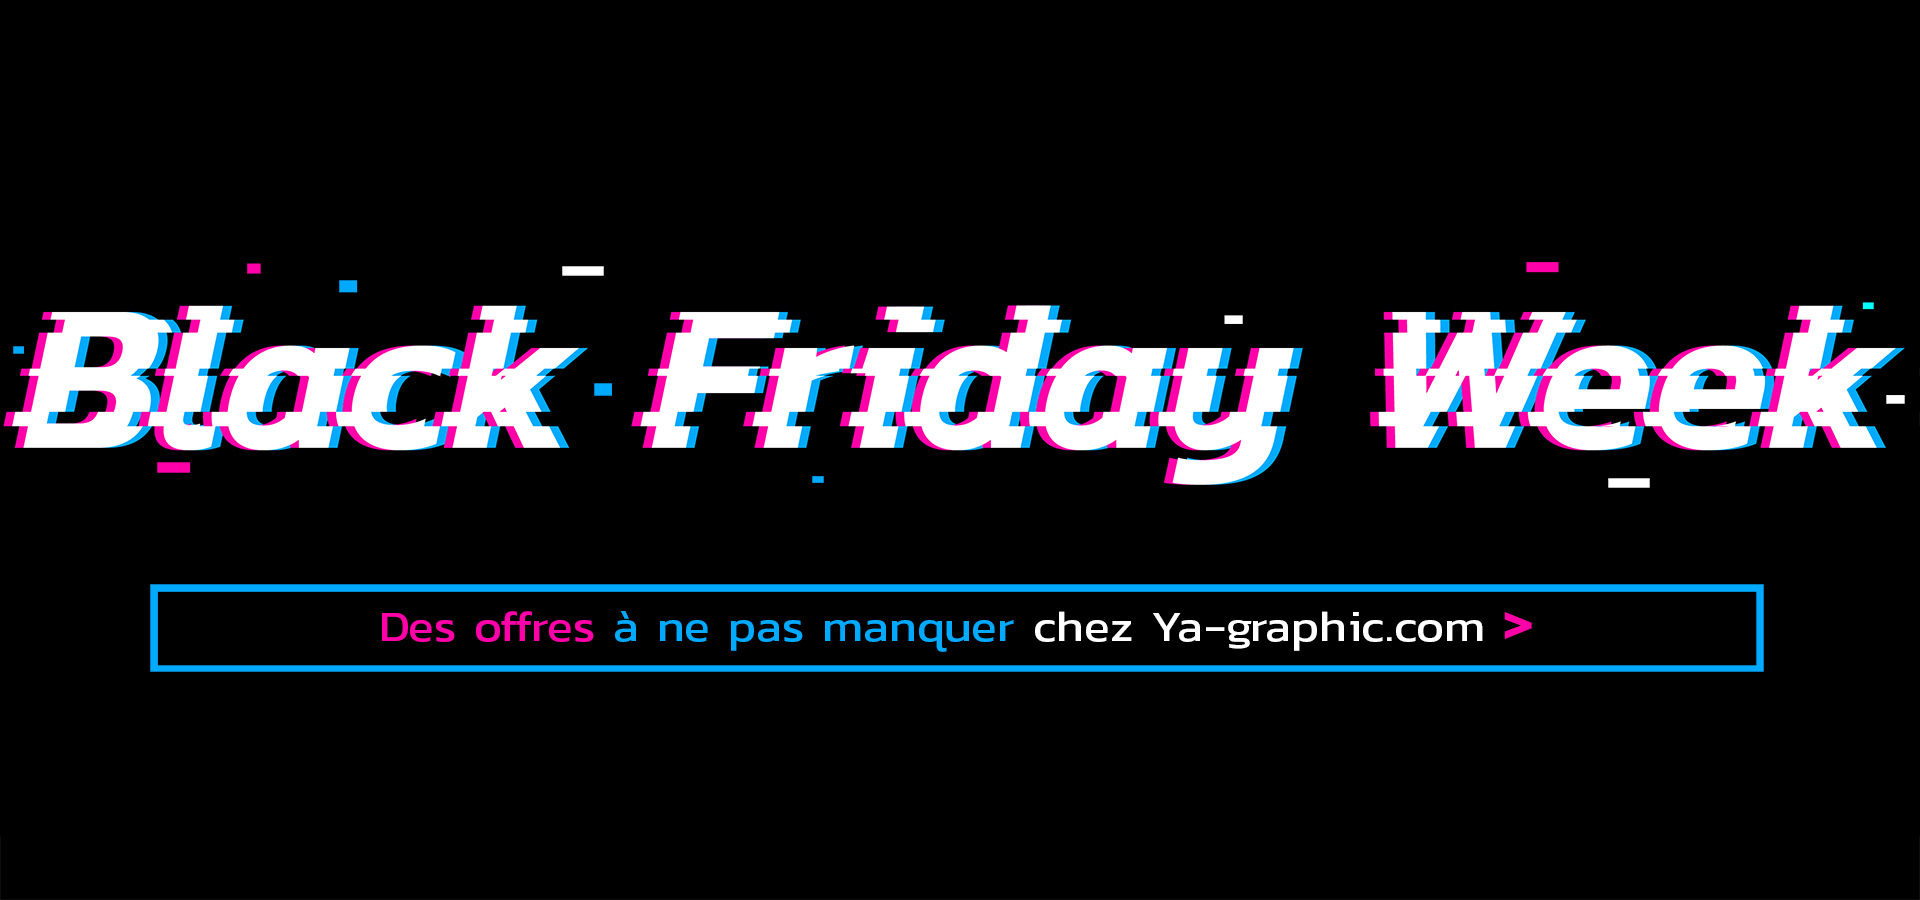 Black Friday Week chez Ya-graphic.com